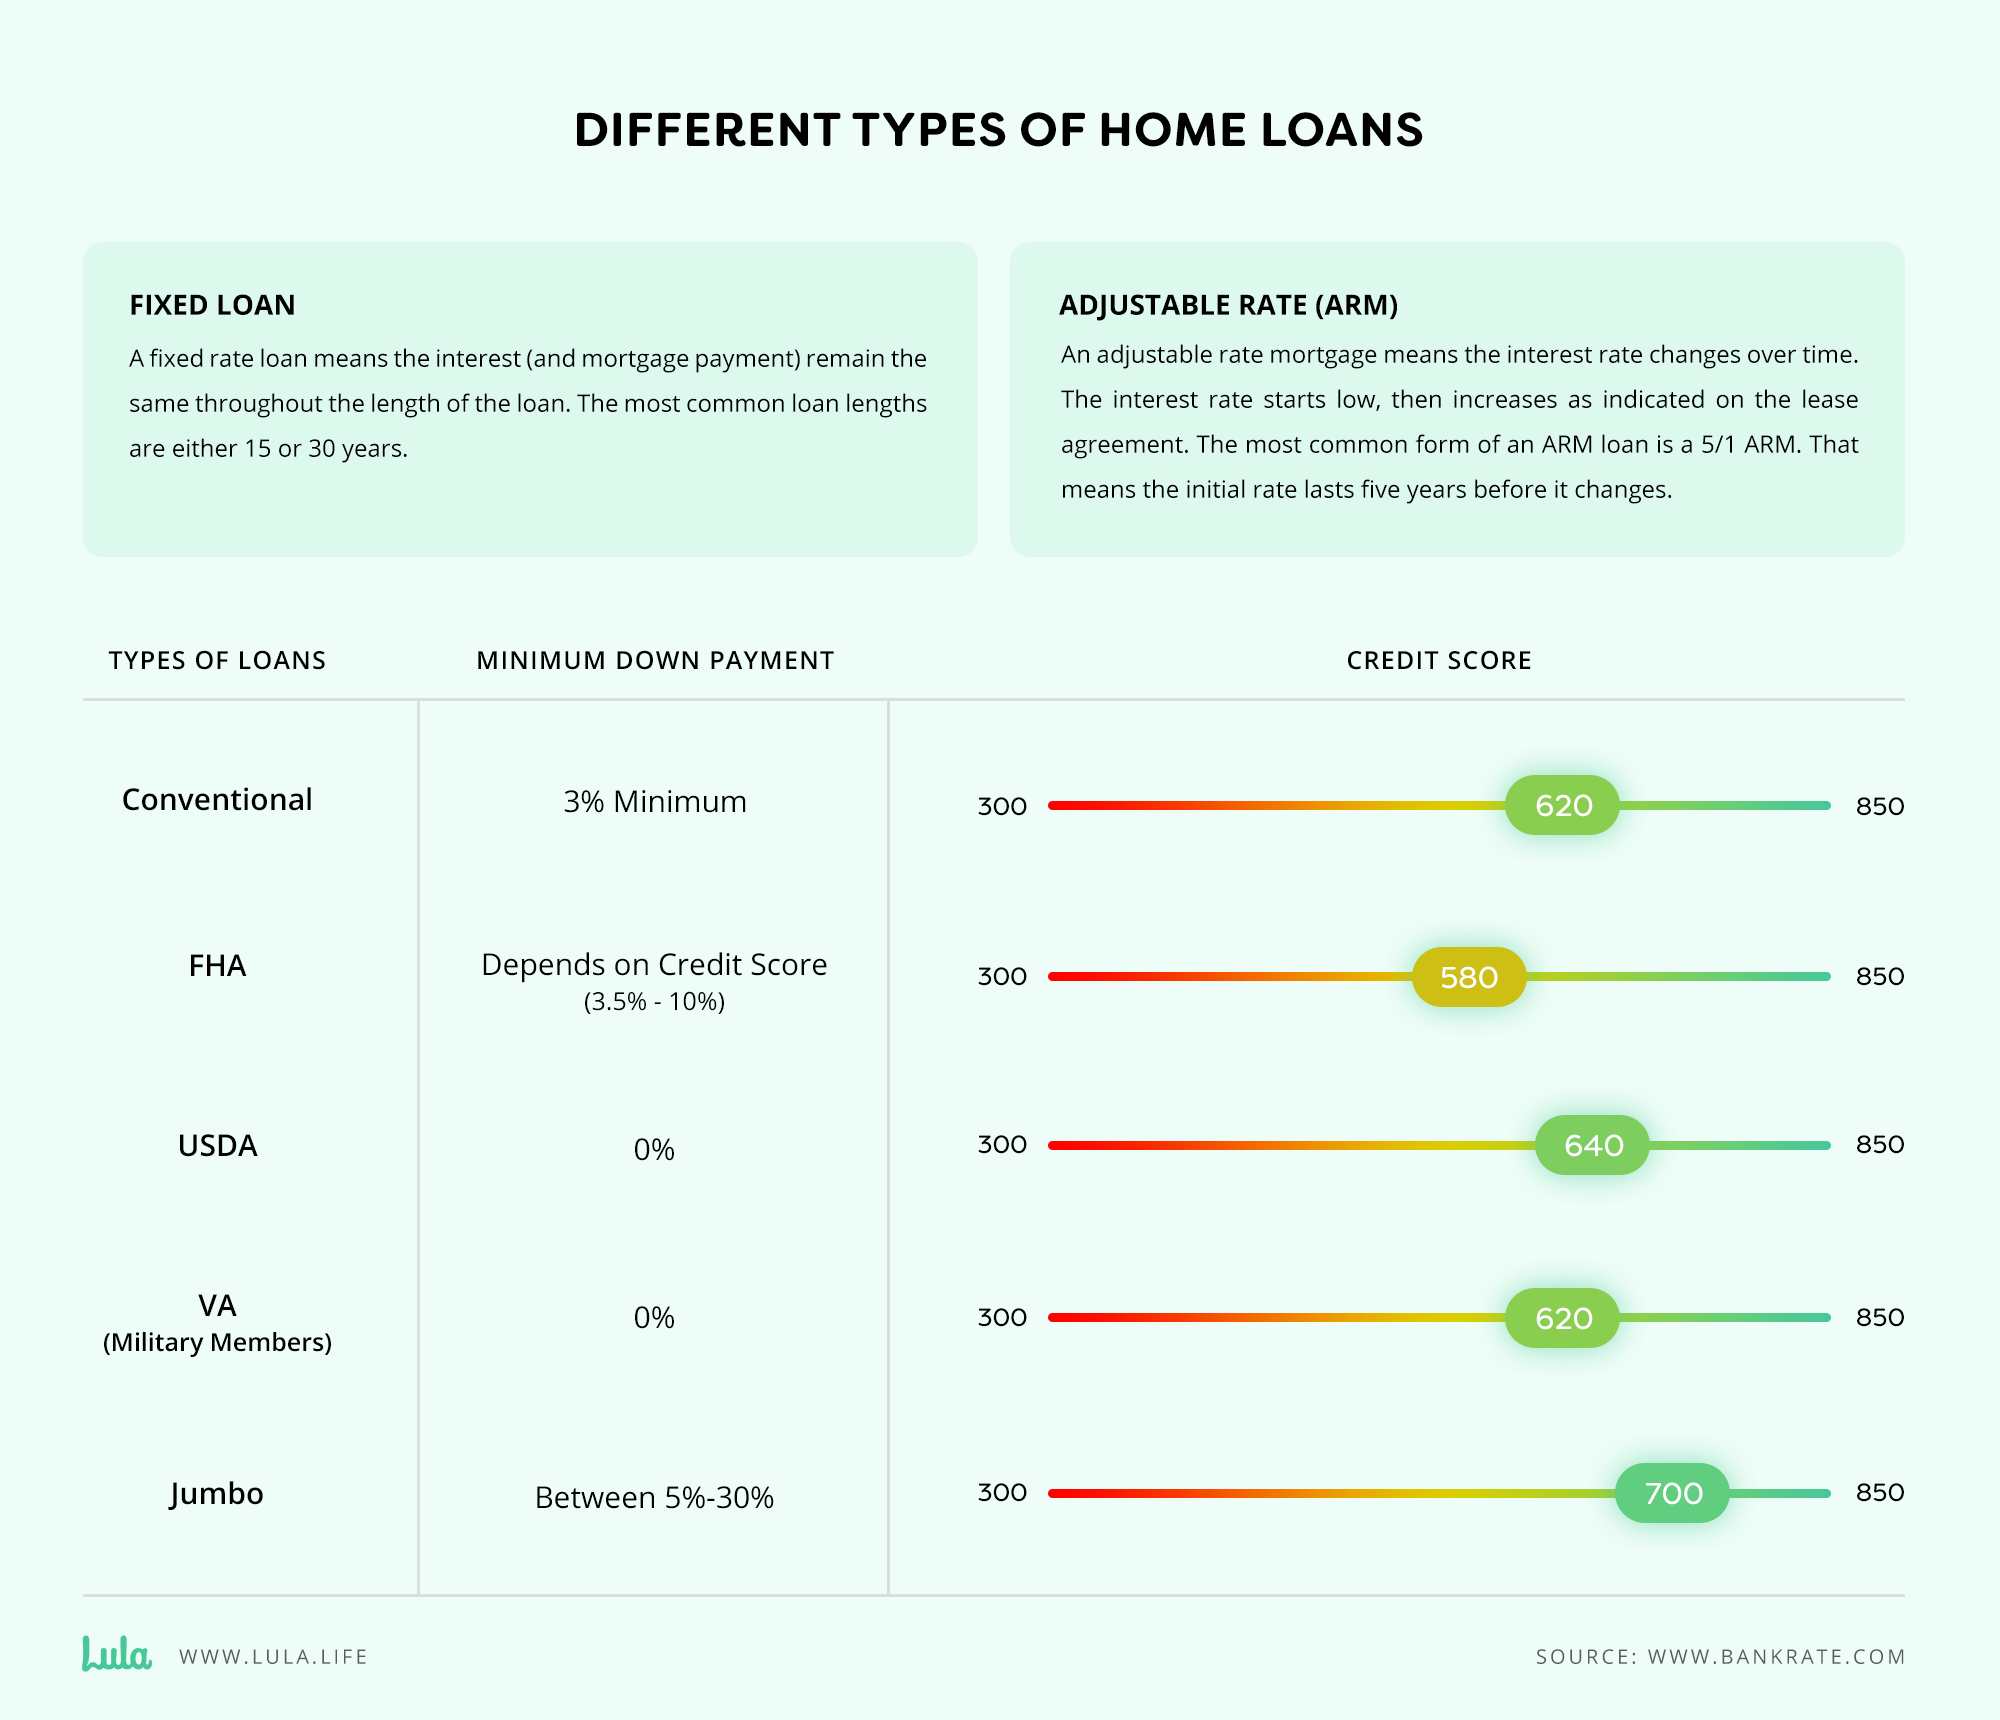 different types of home loans infographic